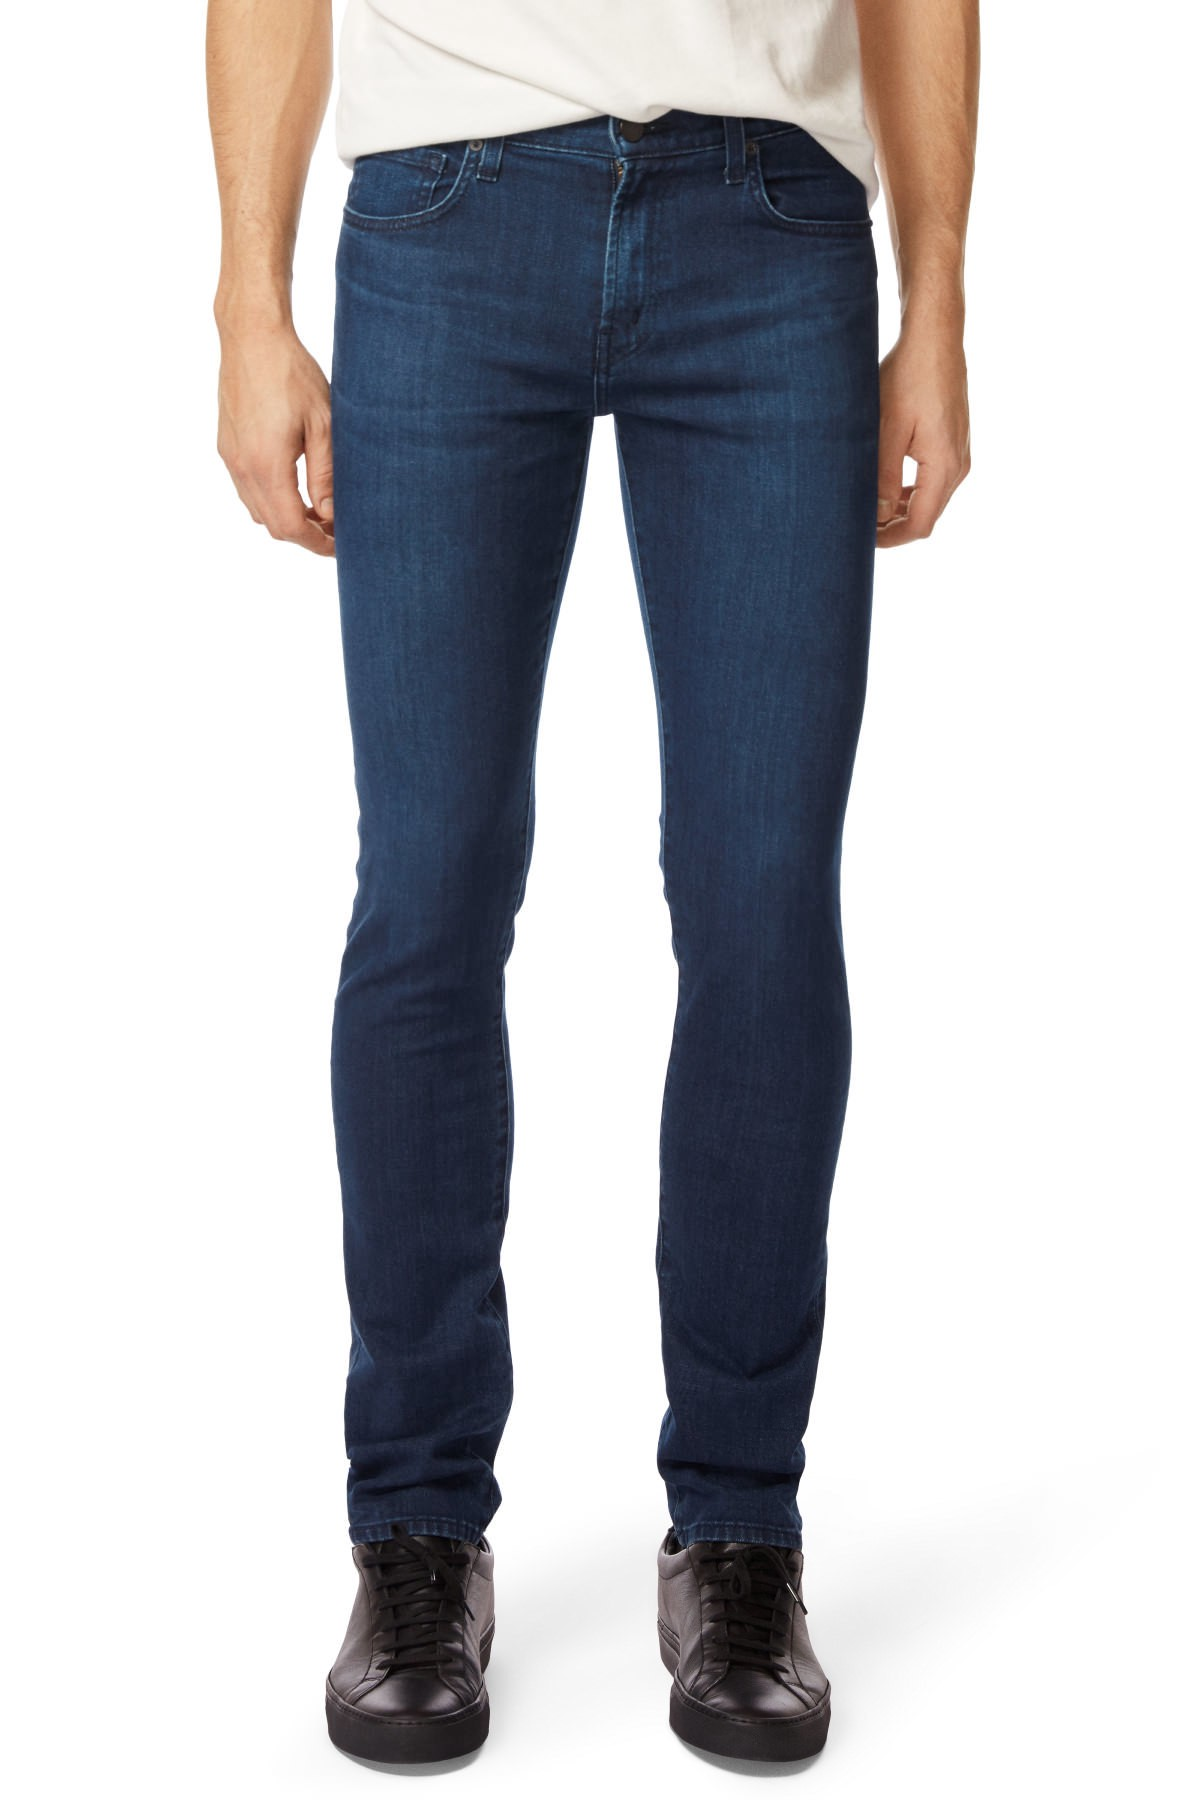 67aec0ac60520 J Brand Tyler Slim Fit In Andro - 32 | Products in 2018 | Pinterest ...